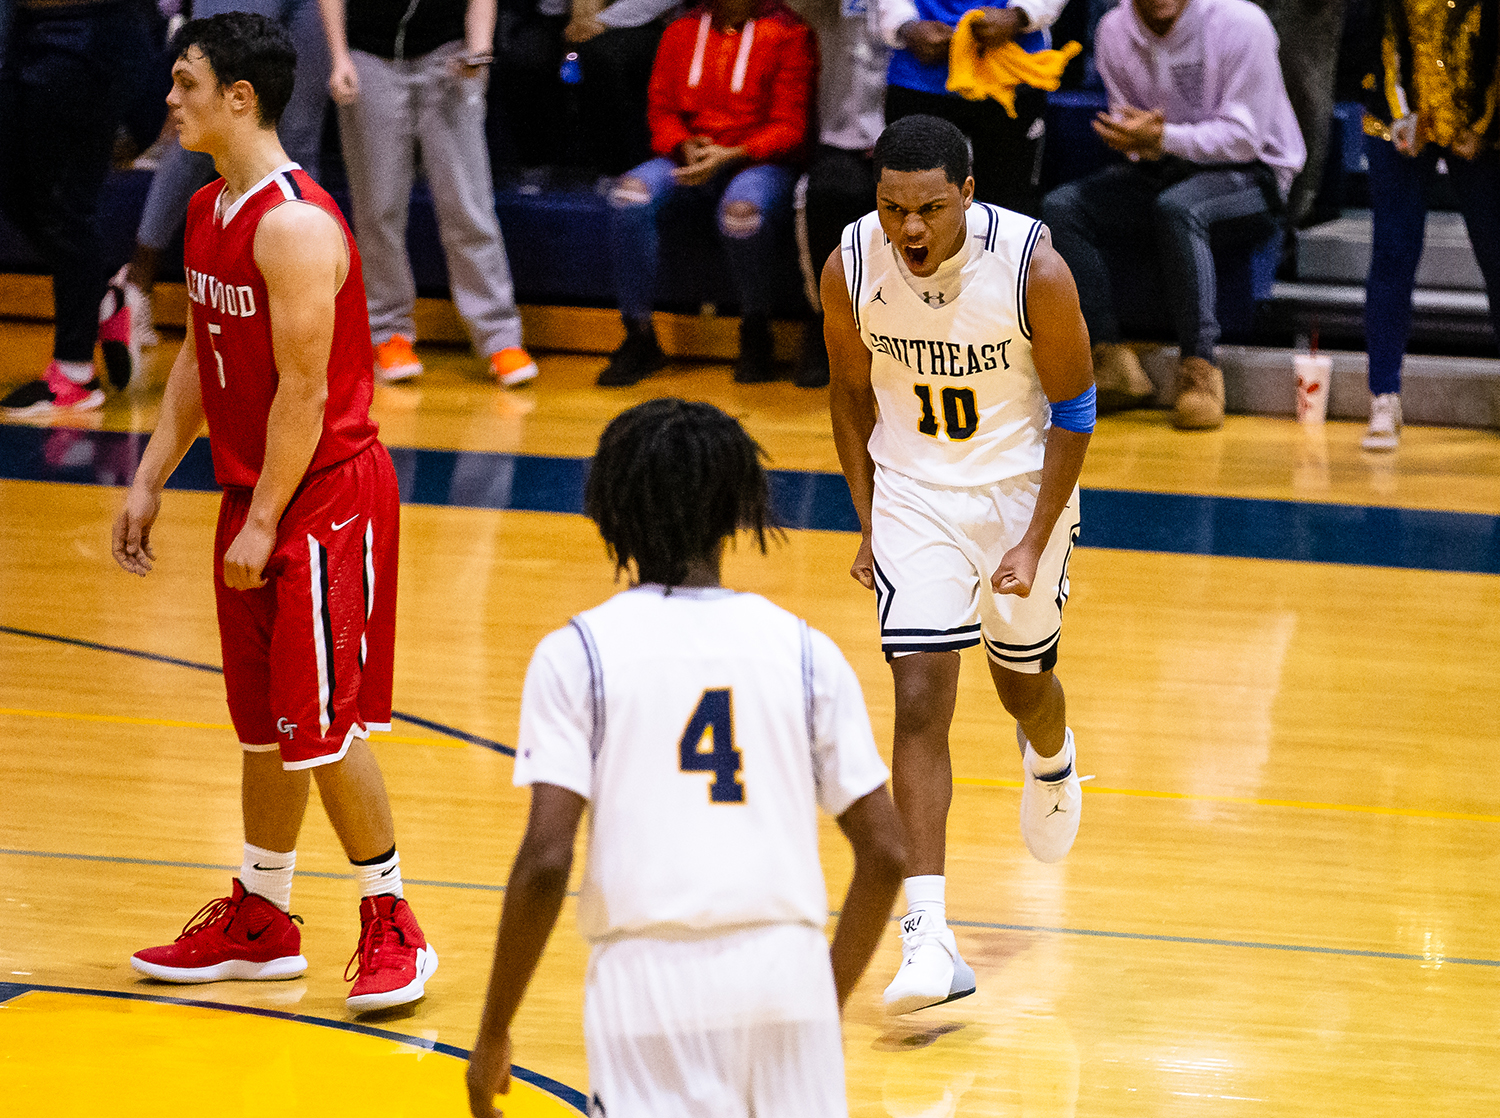 Southeast's Damon Davis (10) reacts after draining a 3-pointer against Glenwood after the Spartans held a possession for over two minutes in the second half at Scheffler Gymnasium, Saturday, Dec. 15, 2018, in Springfield, Ill. [Justin L. Fowler/The State Journal-Register]